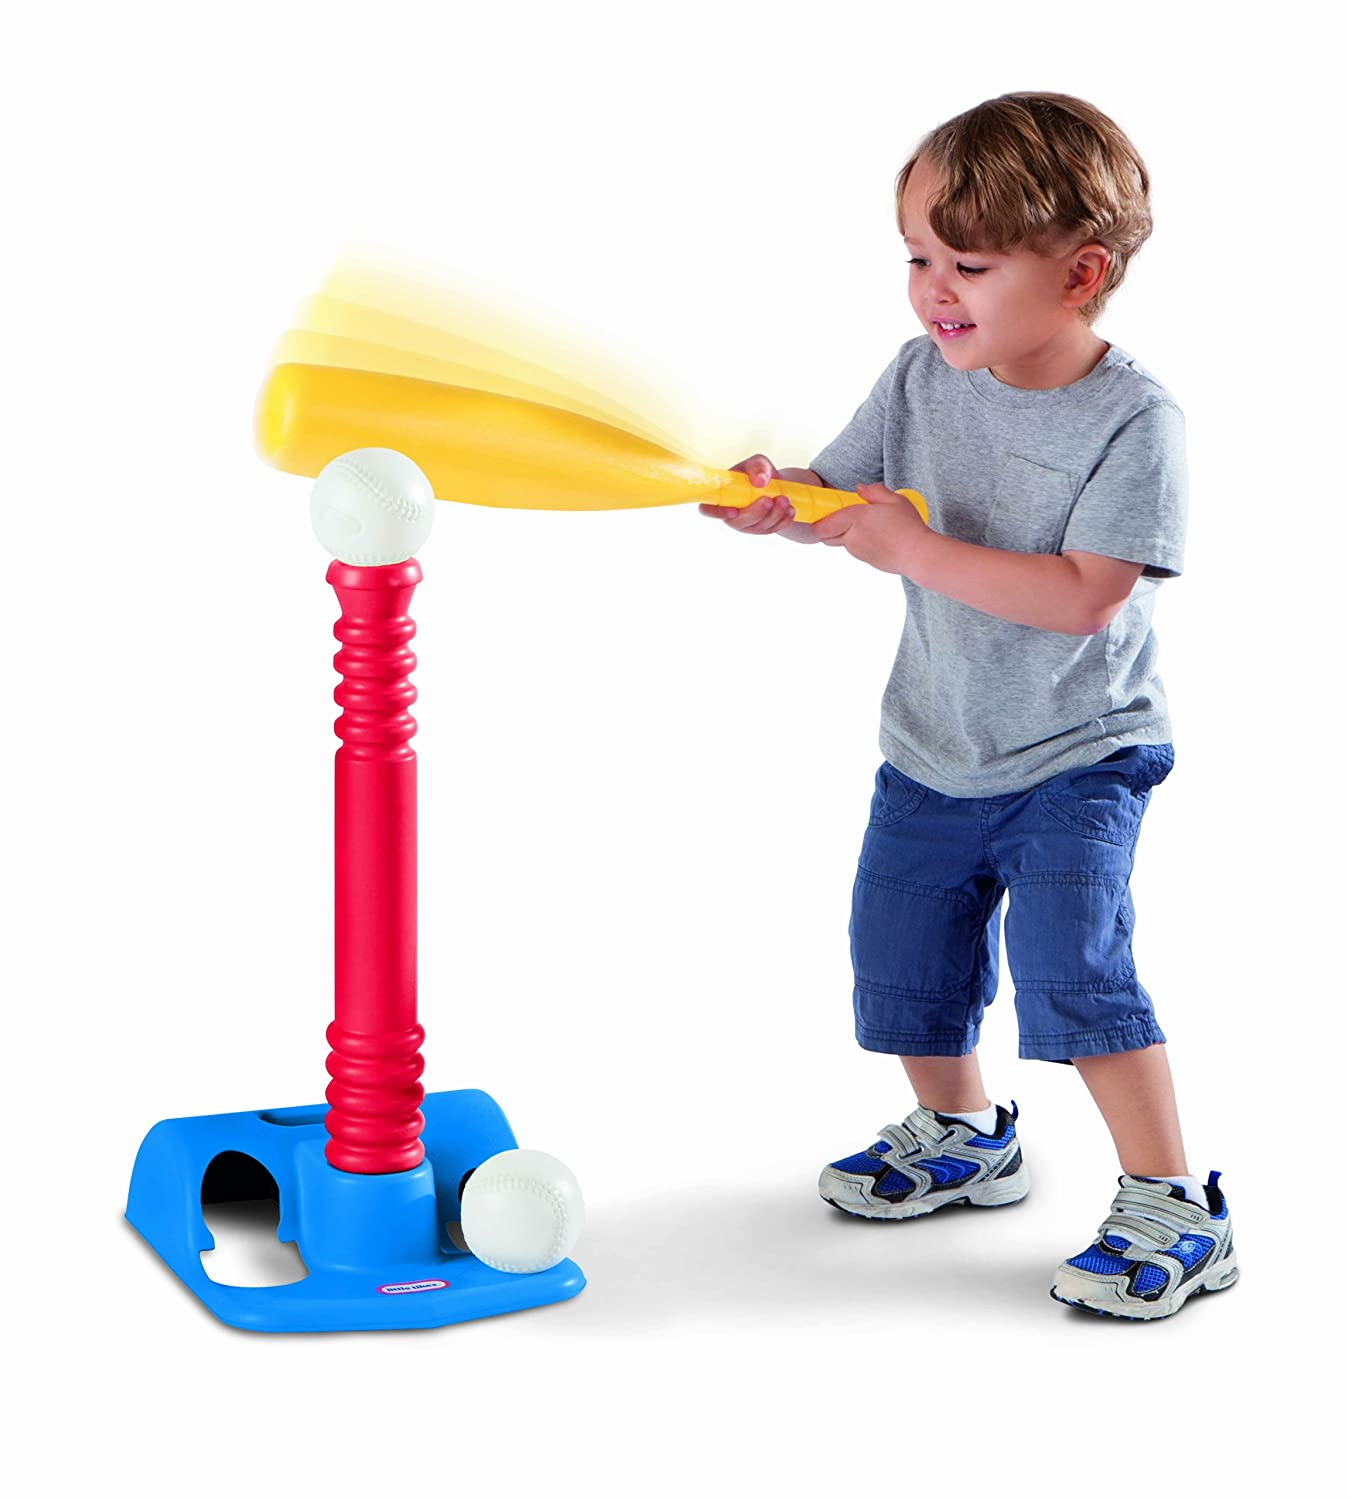 Great Toys For 3 Year Old Boys : Best toys for kids the sporty year